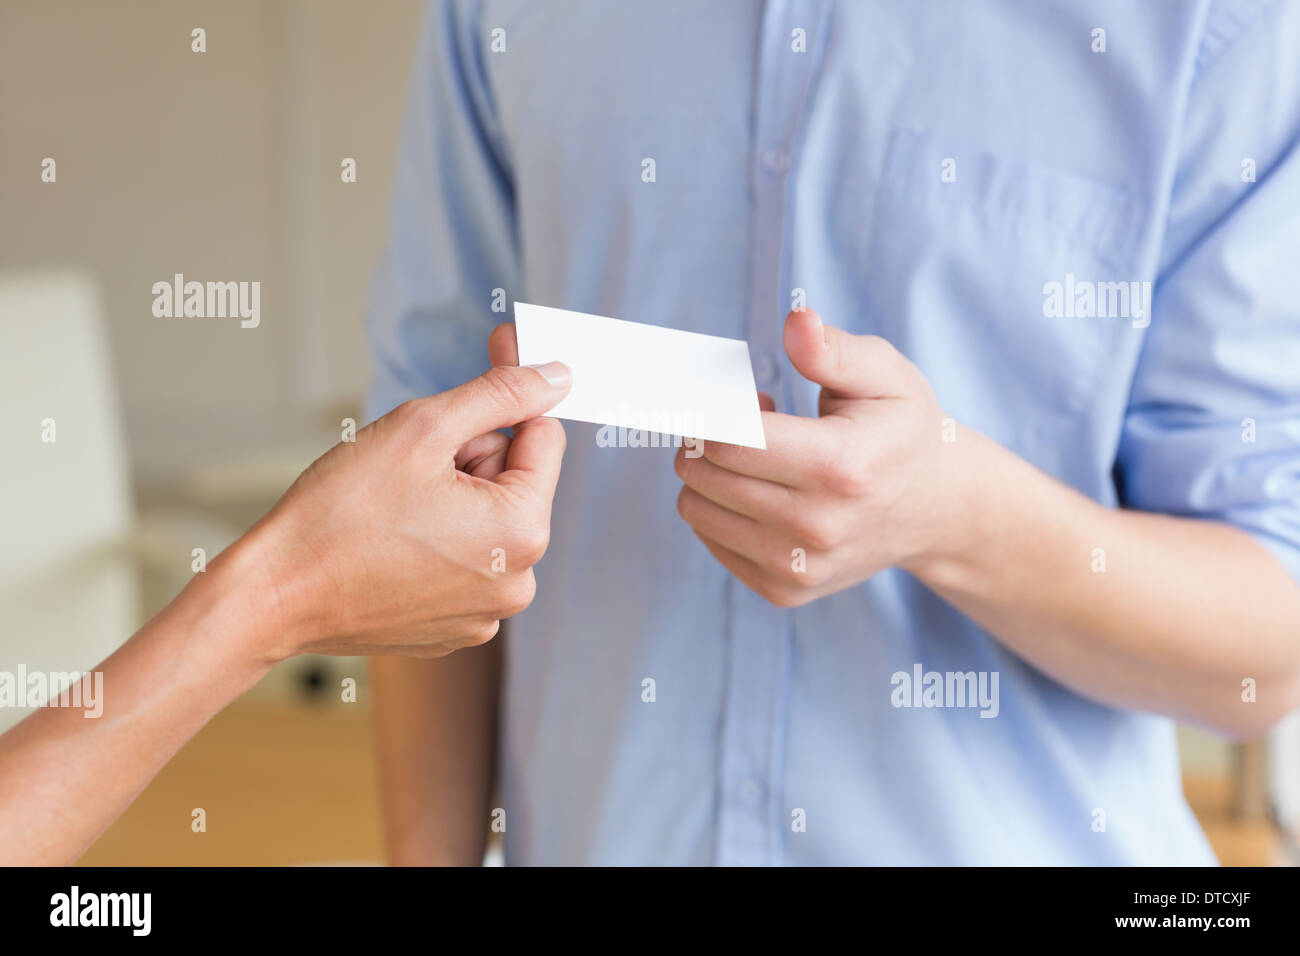 Business people exchanging visiting cards - Stock Image